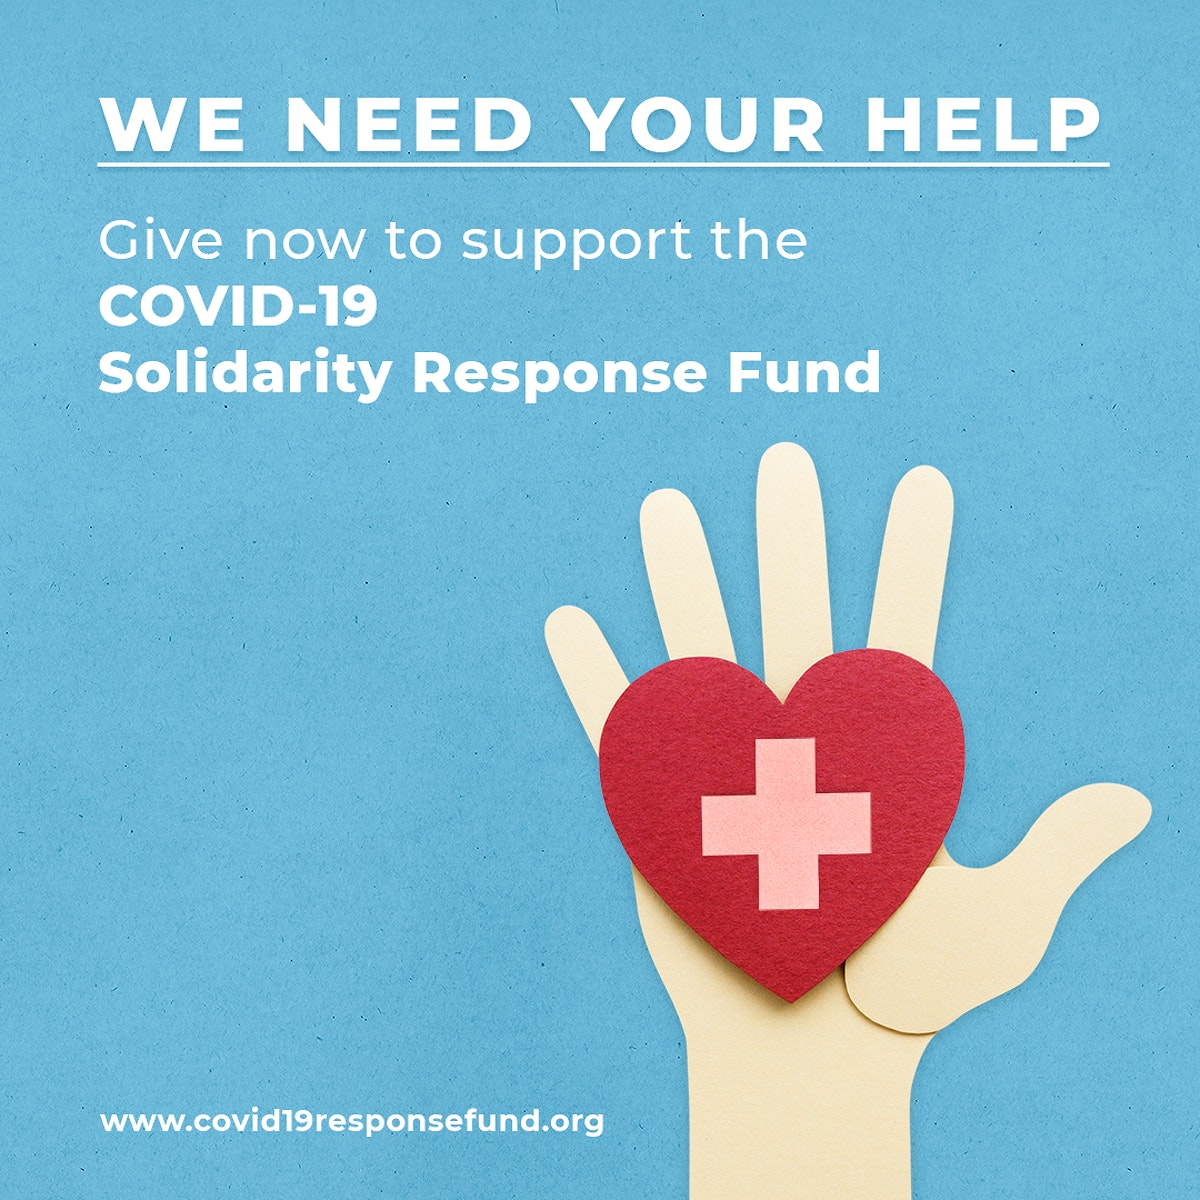 Give now to support the COVID-19 Solidarity Response Fund social temaplate